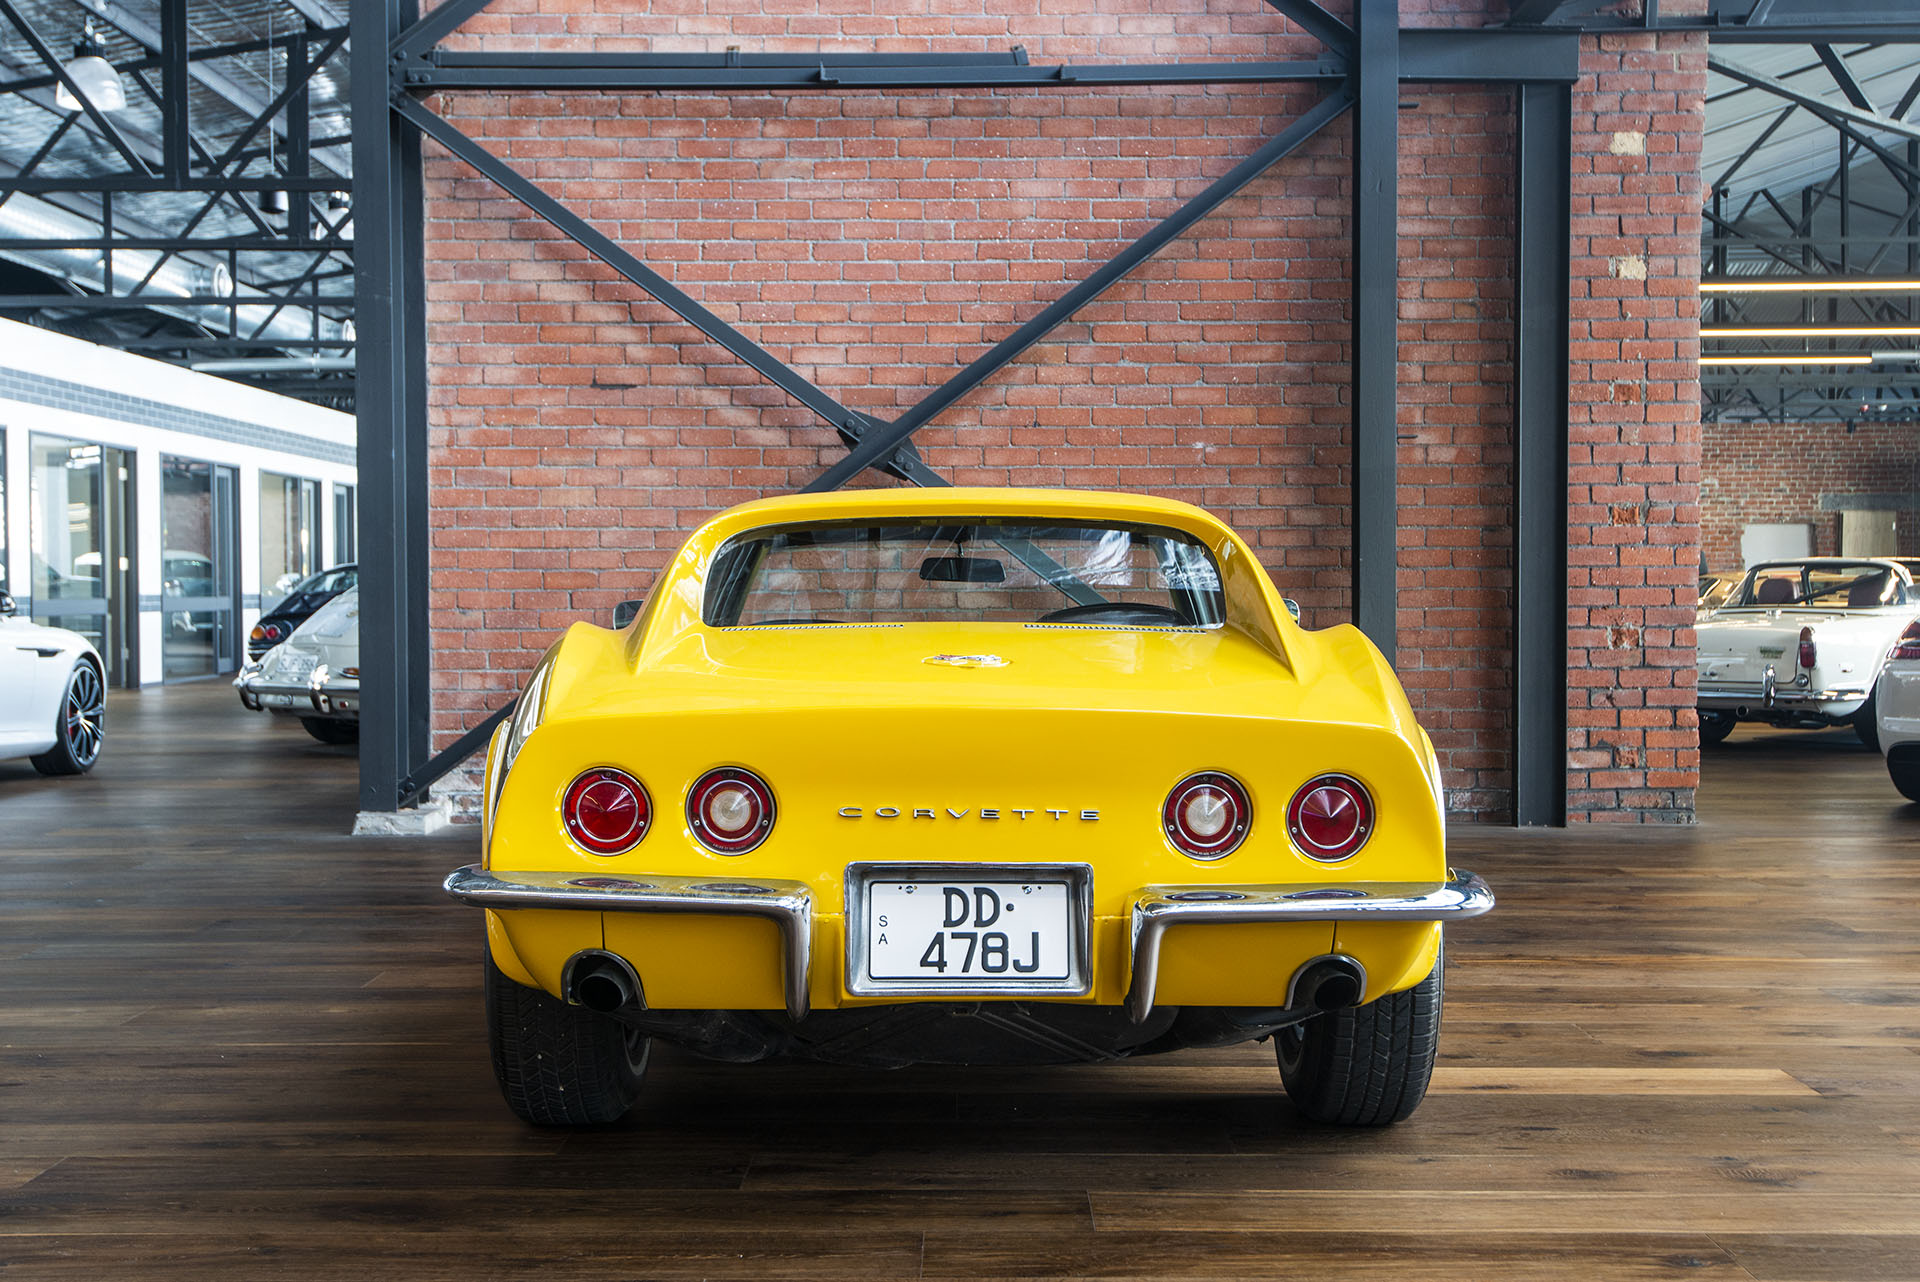 1969 Chevrolet Corvette C3 Manual 427 - Richmonds ...